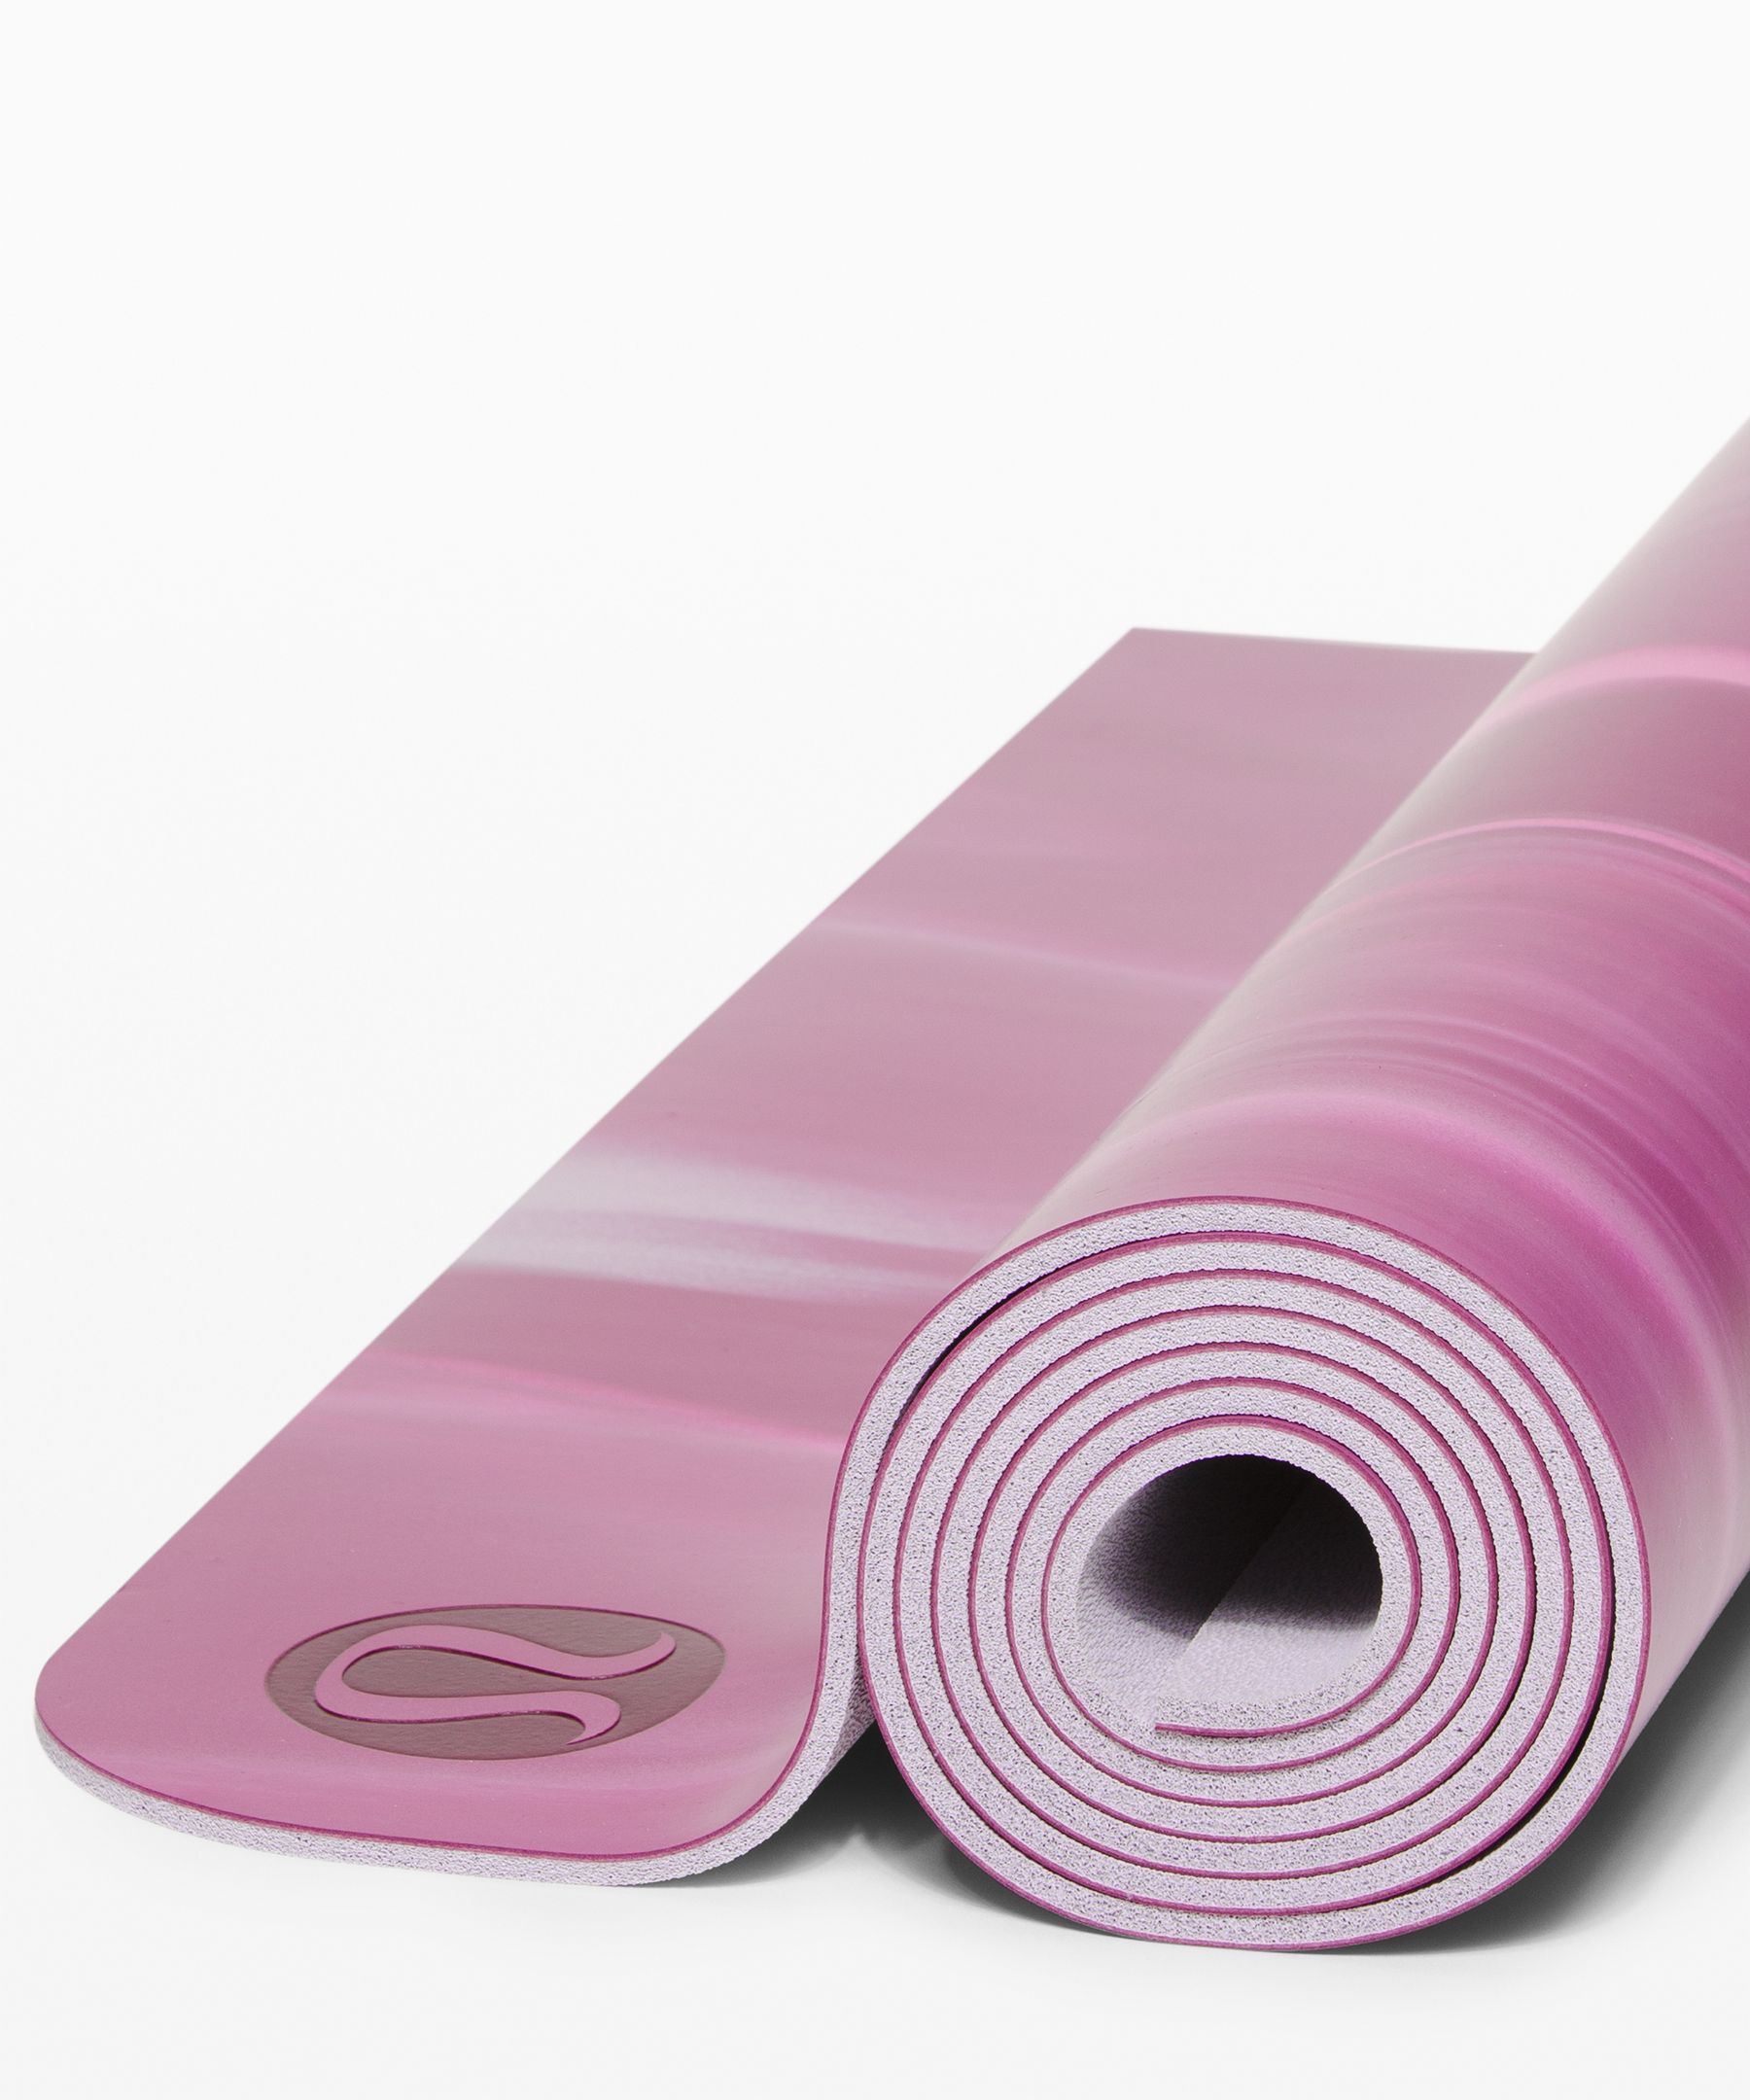 Arise Mat Made With Fsc Certified Rubber 5mm Yoga Mats Lululemon